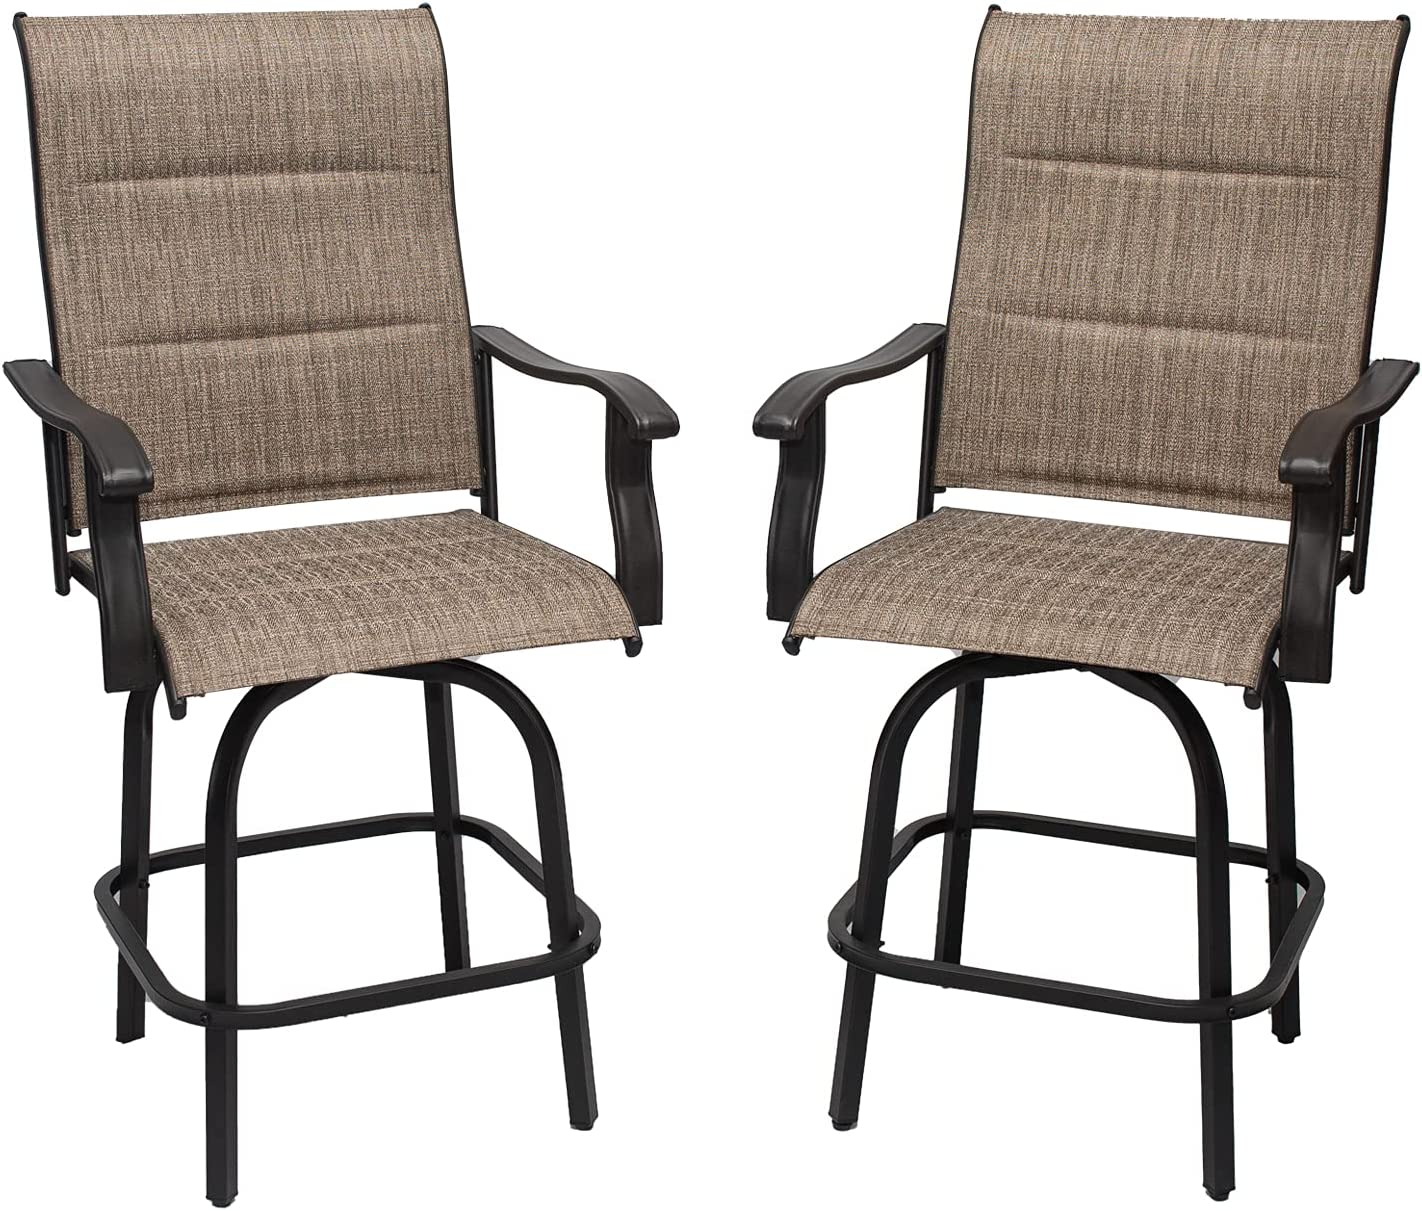 Outdoor San Francisco Mall High Top Sale Patio Bar Stools Height Chairs Swivel